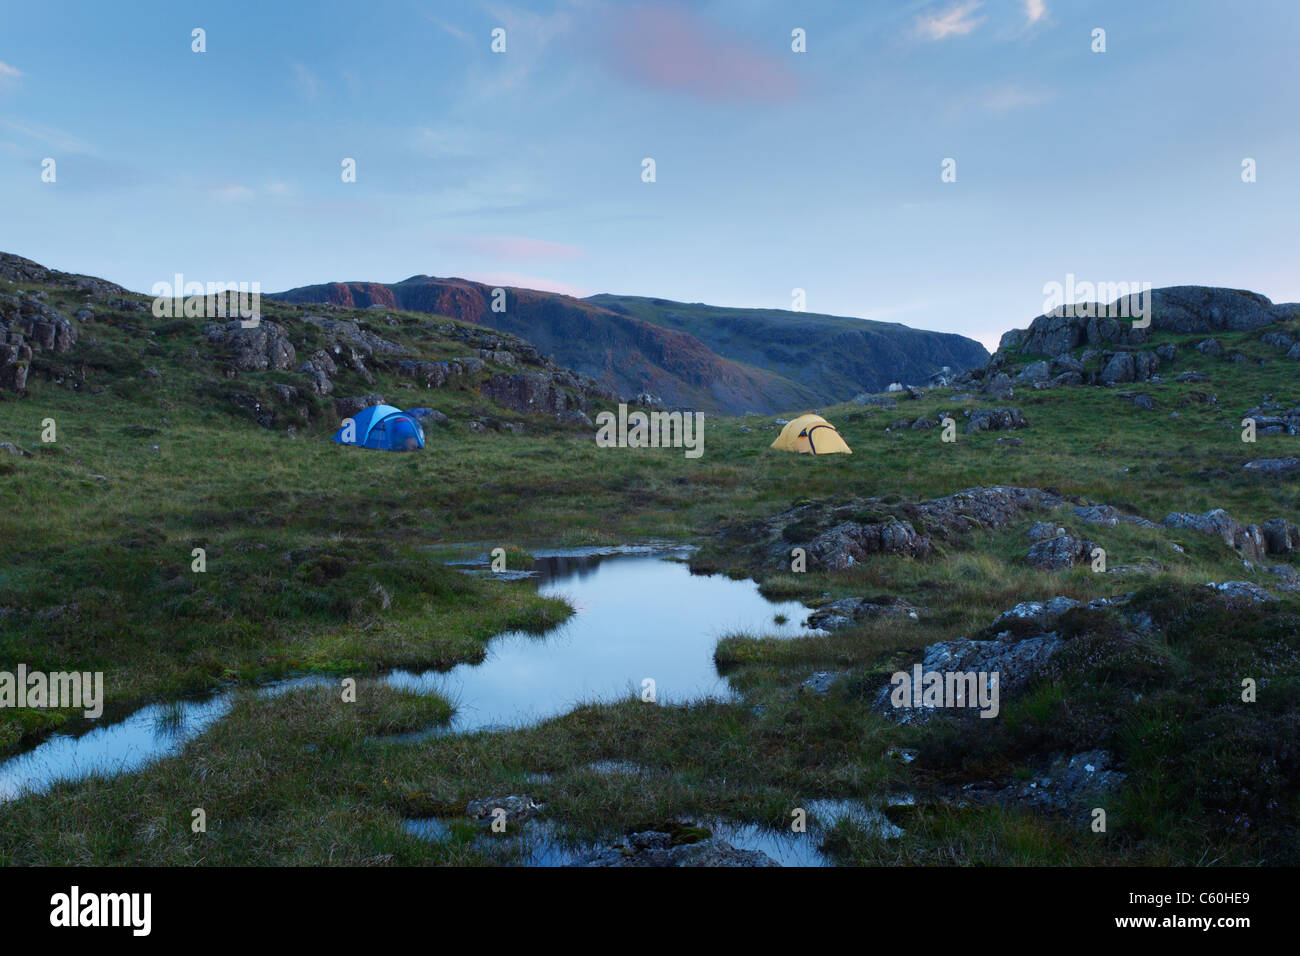 Wild Camping on Great Round How. Lake District National Park. Cumbria. England. UK. - Stock Image